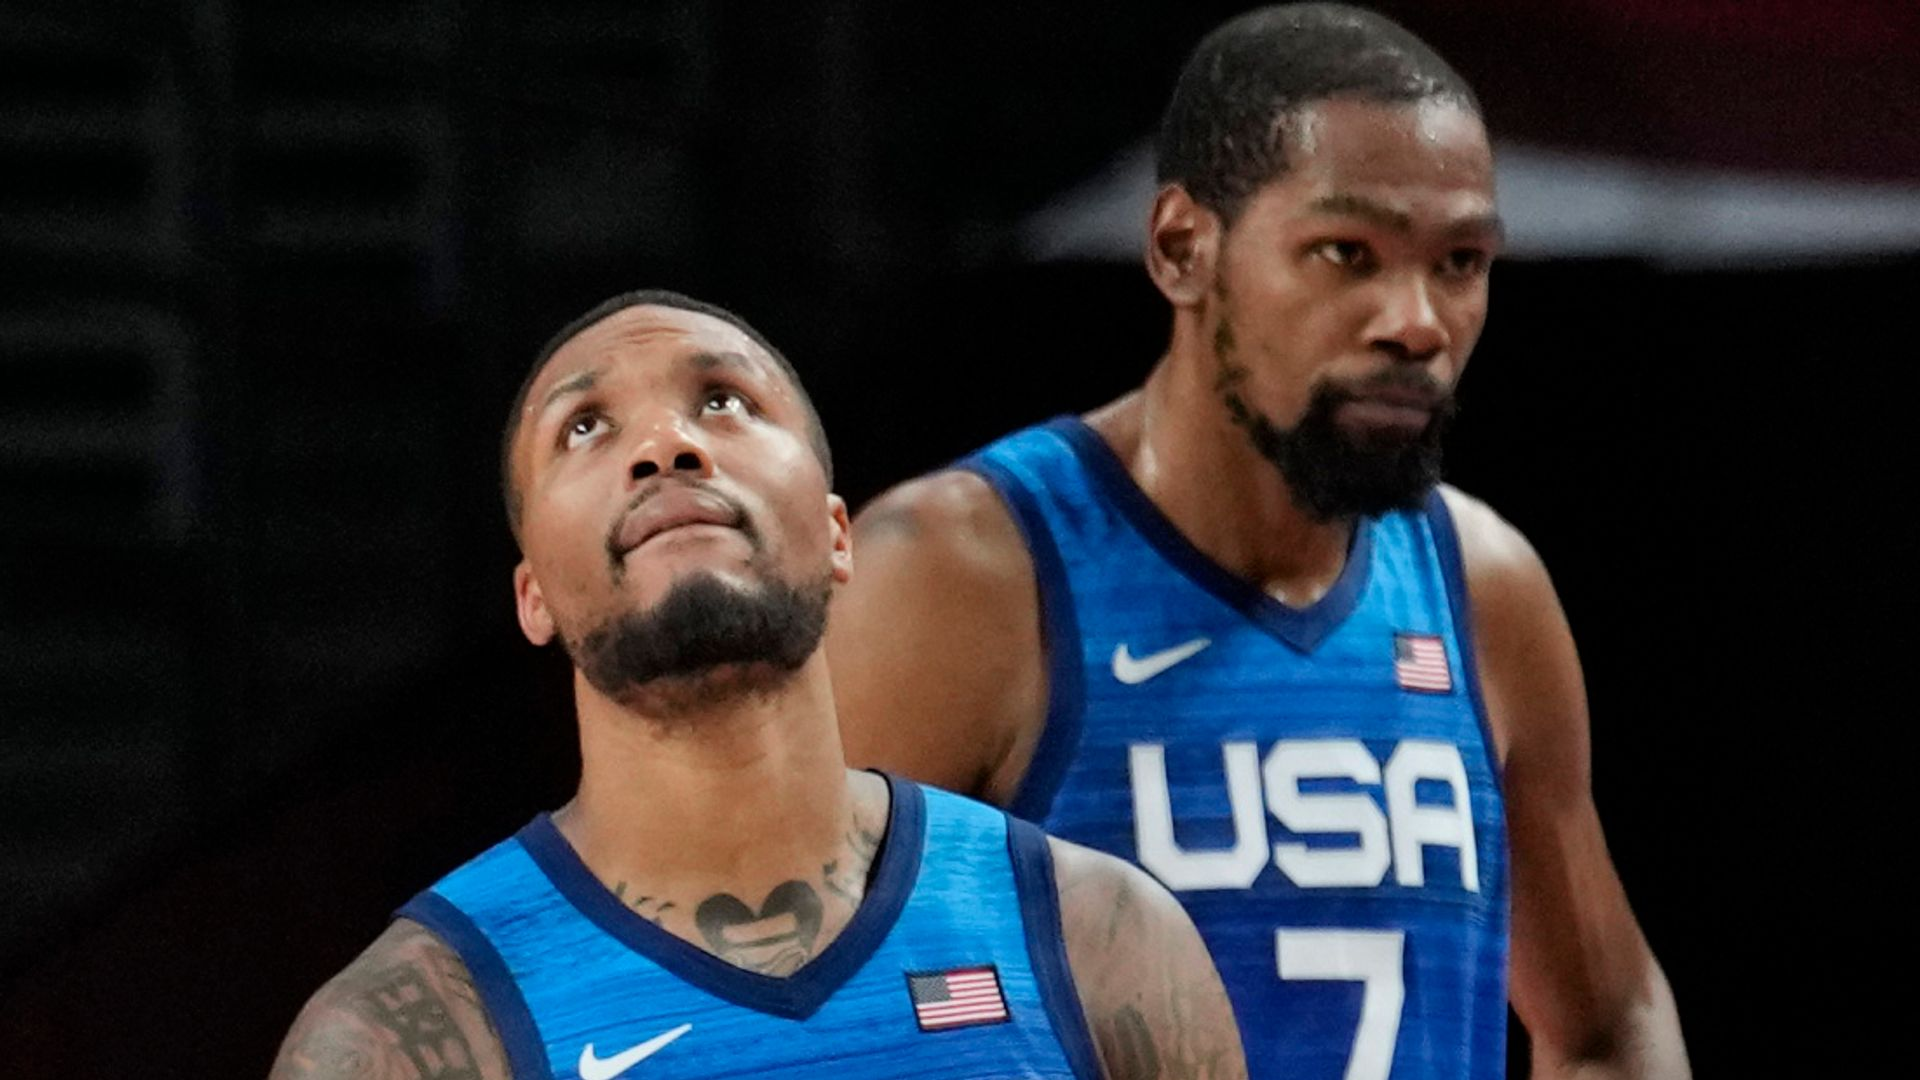 USA stunned by France for first Olympic loss since 2004